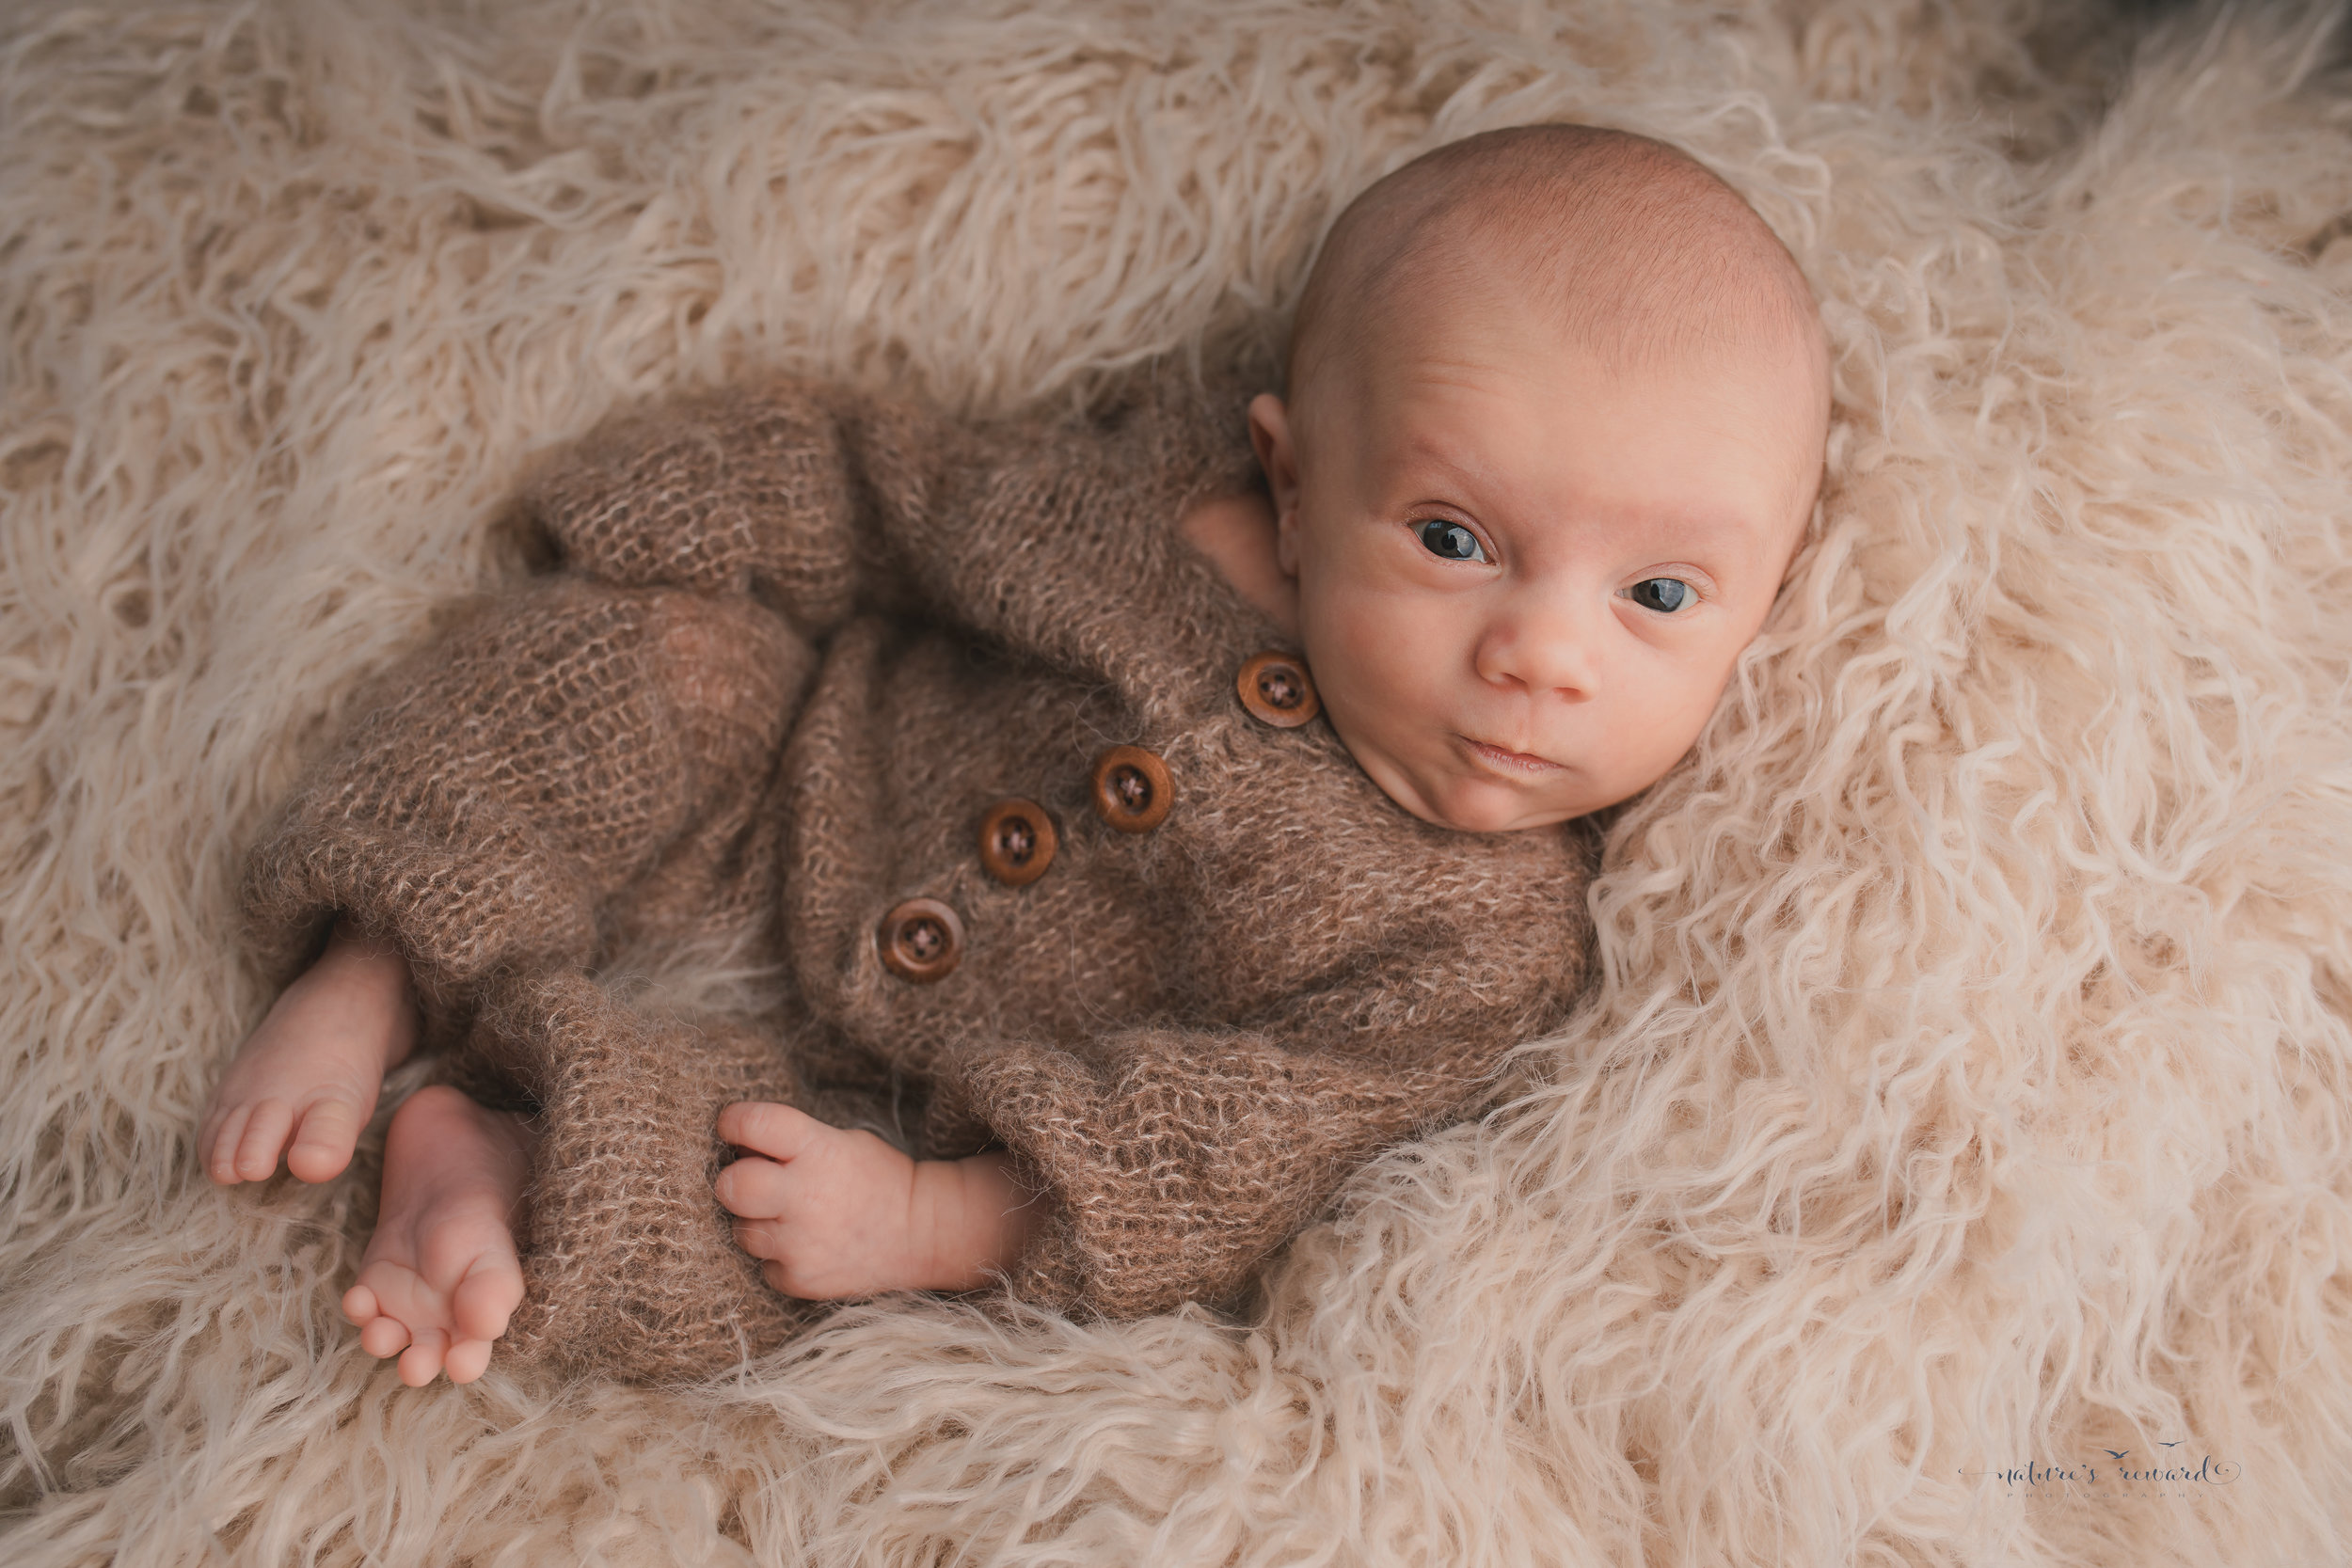 A baby boy wearing a sleeper on a tan fur making a great face by nature's Reward Photography